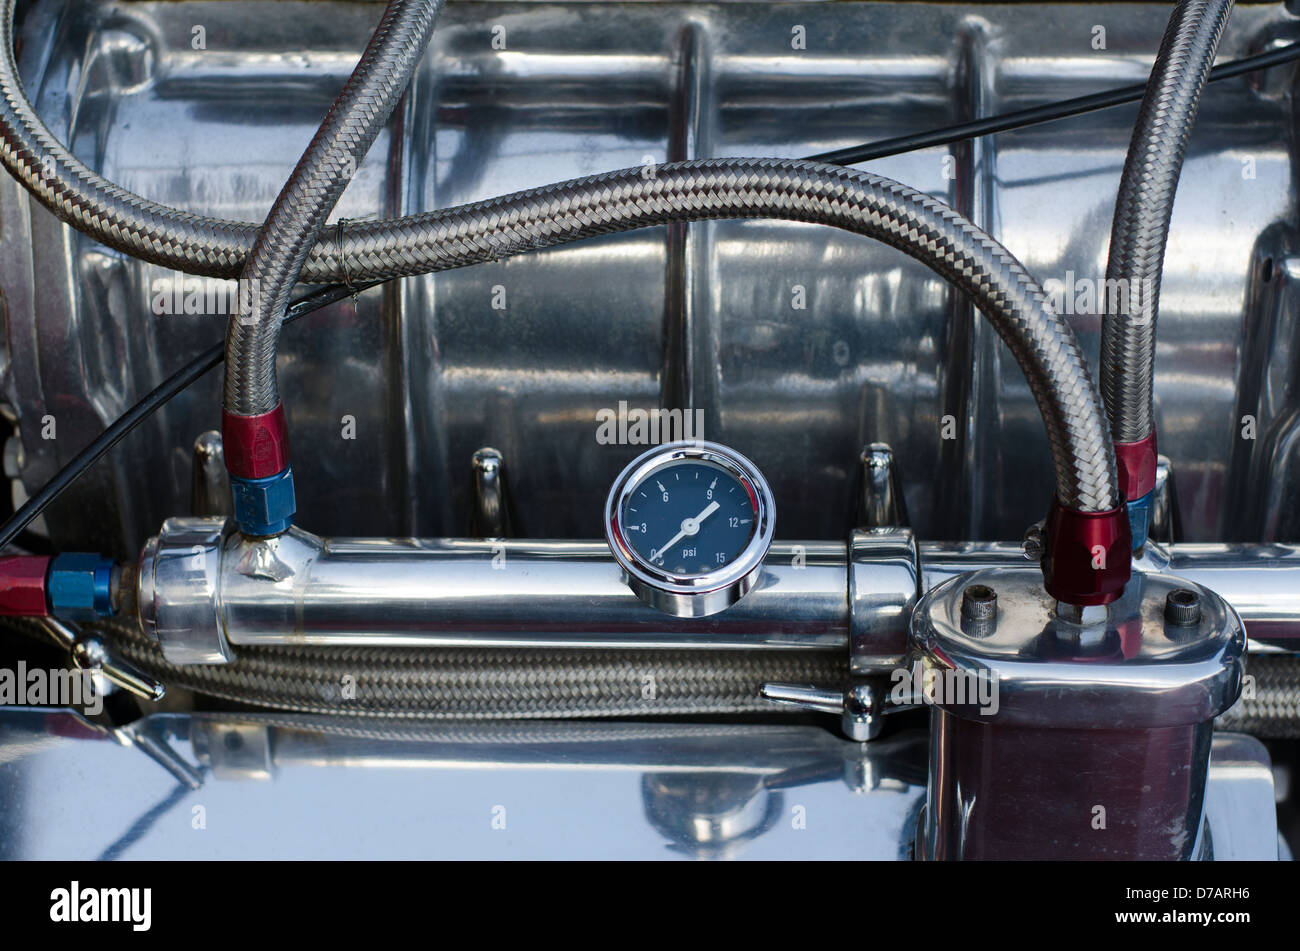 Combustion Engine Stockfotos & Combustion Engine Bilder - Alamy